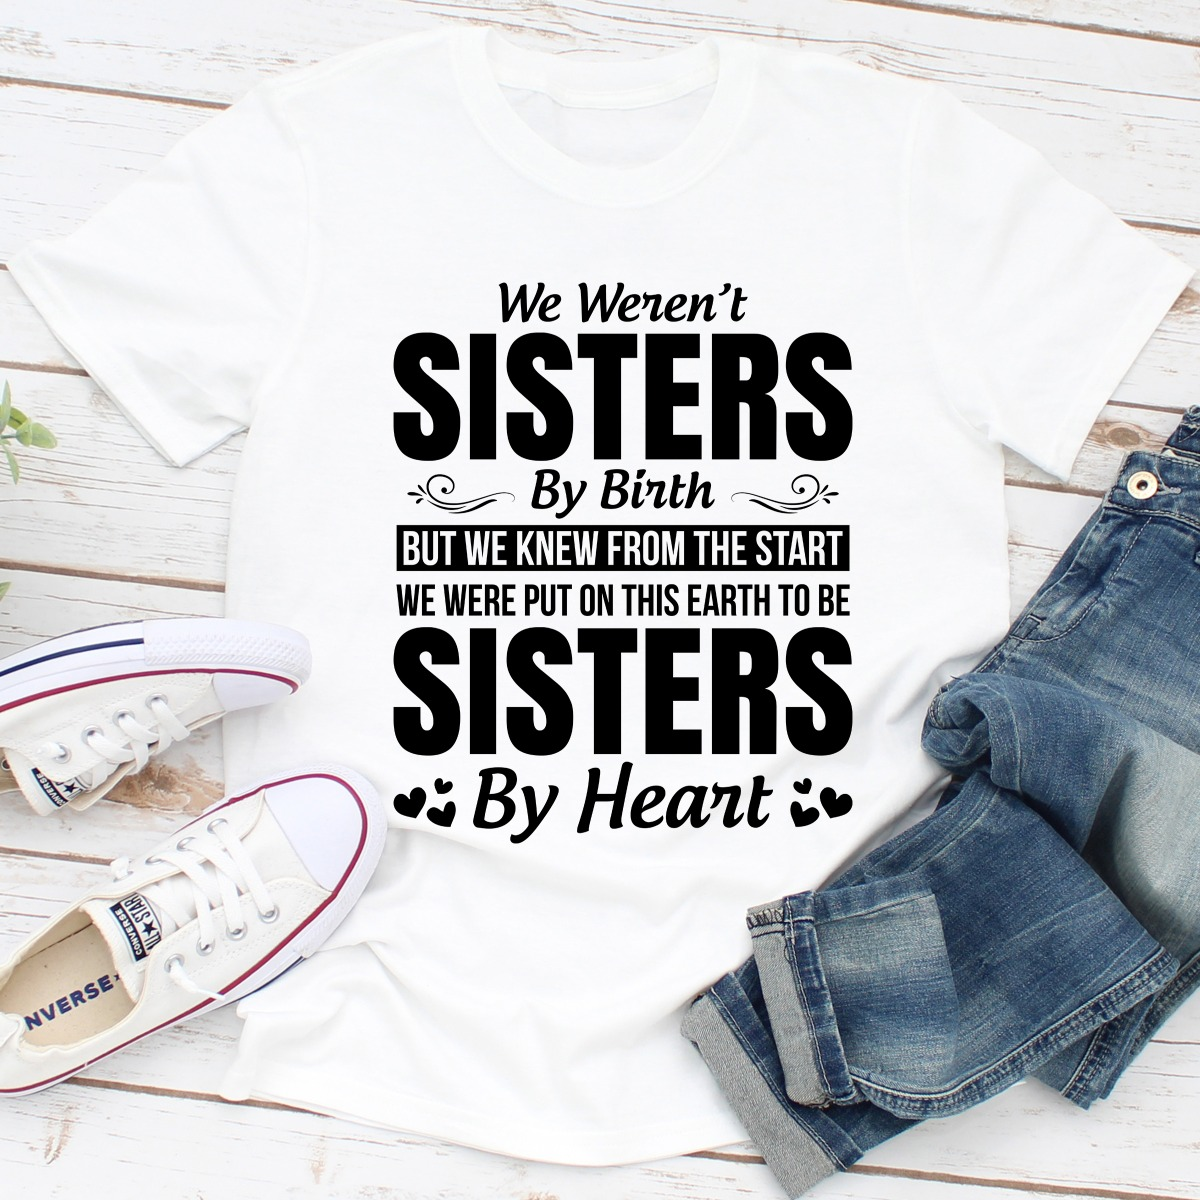 We Weren't Sisters By Birth